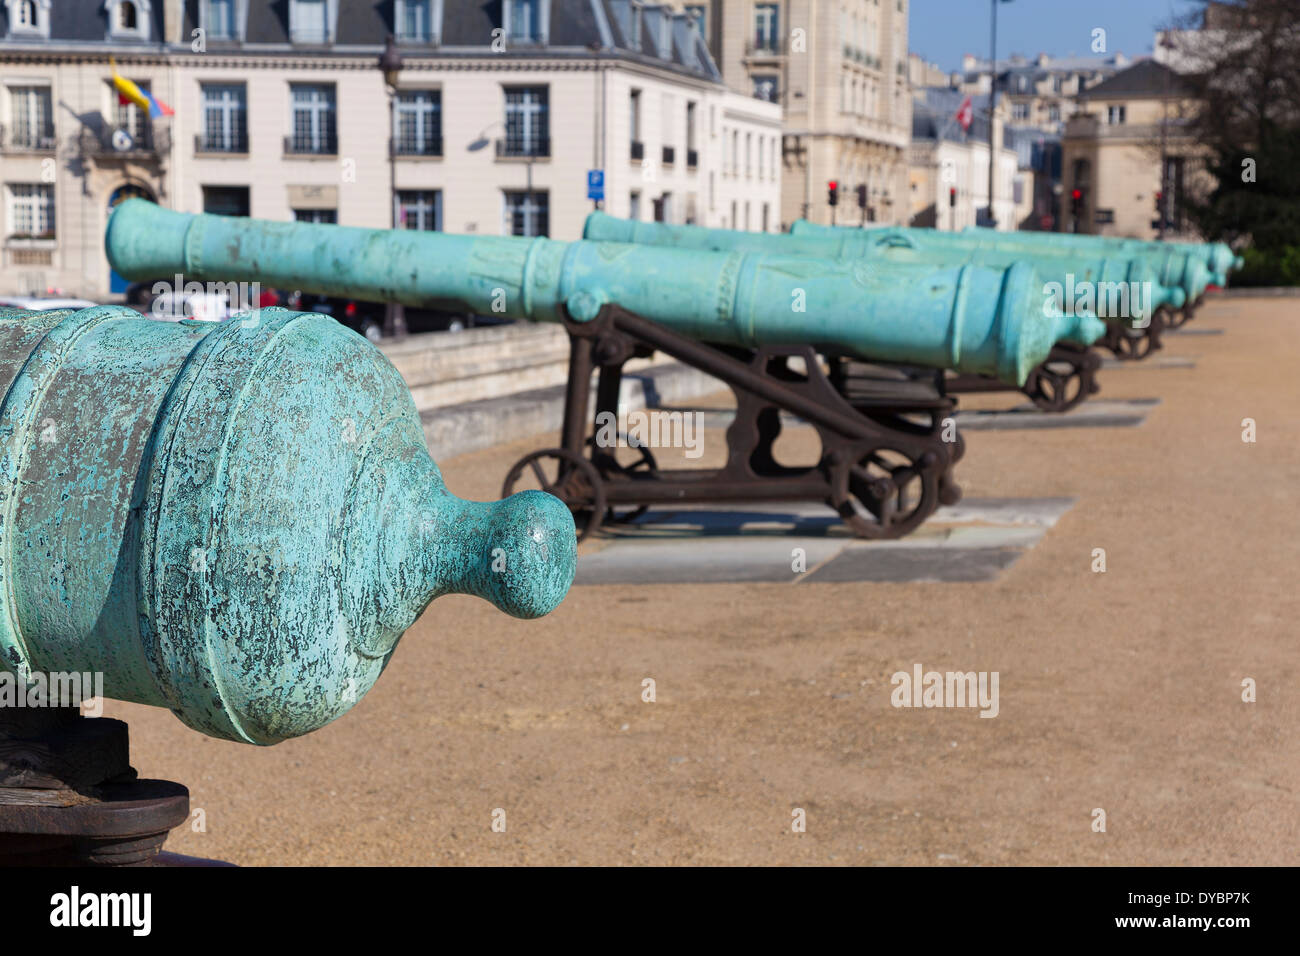 Cannons in the Invalides, Paris, Ile-de-france, France - Stock Image